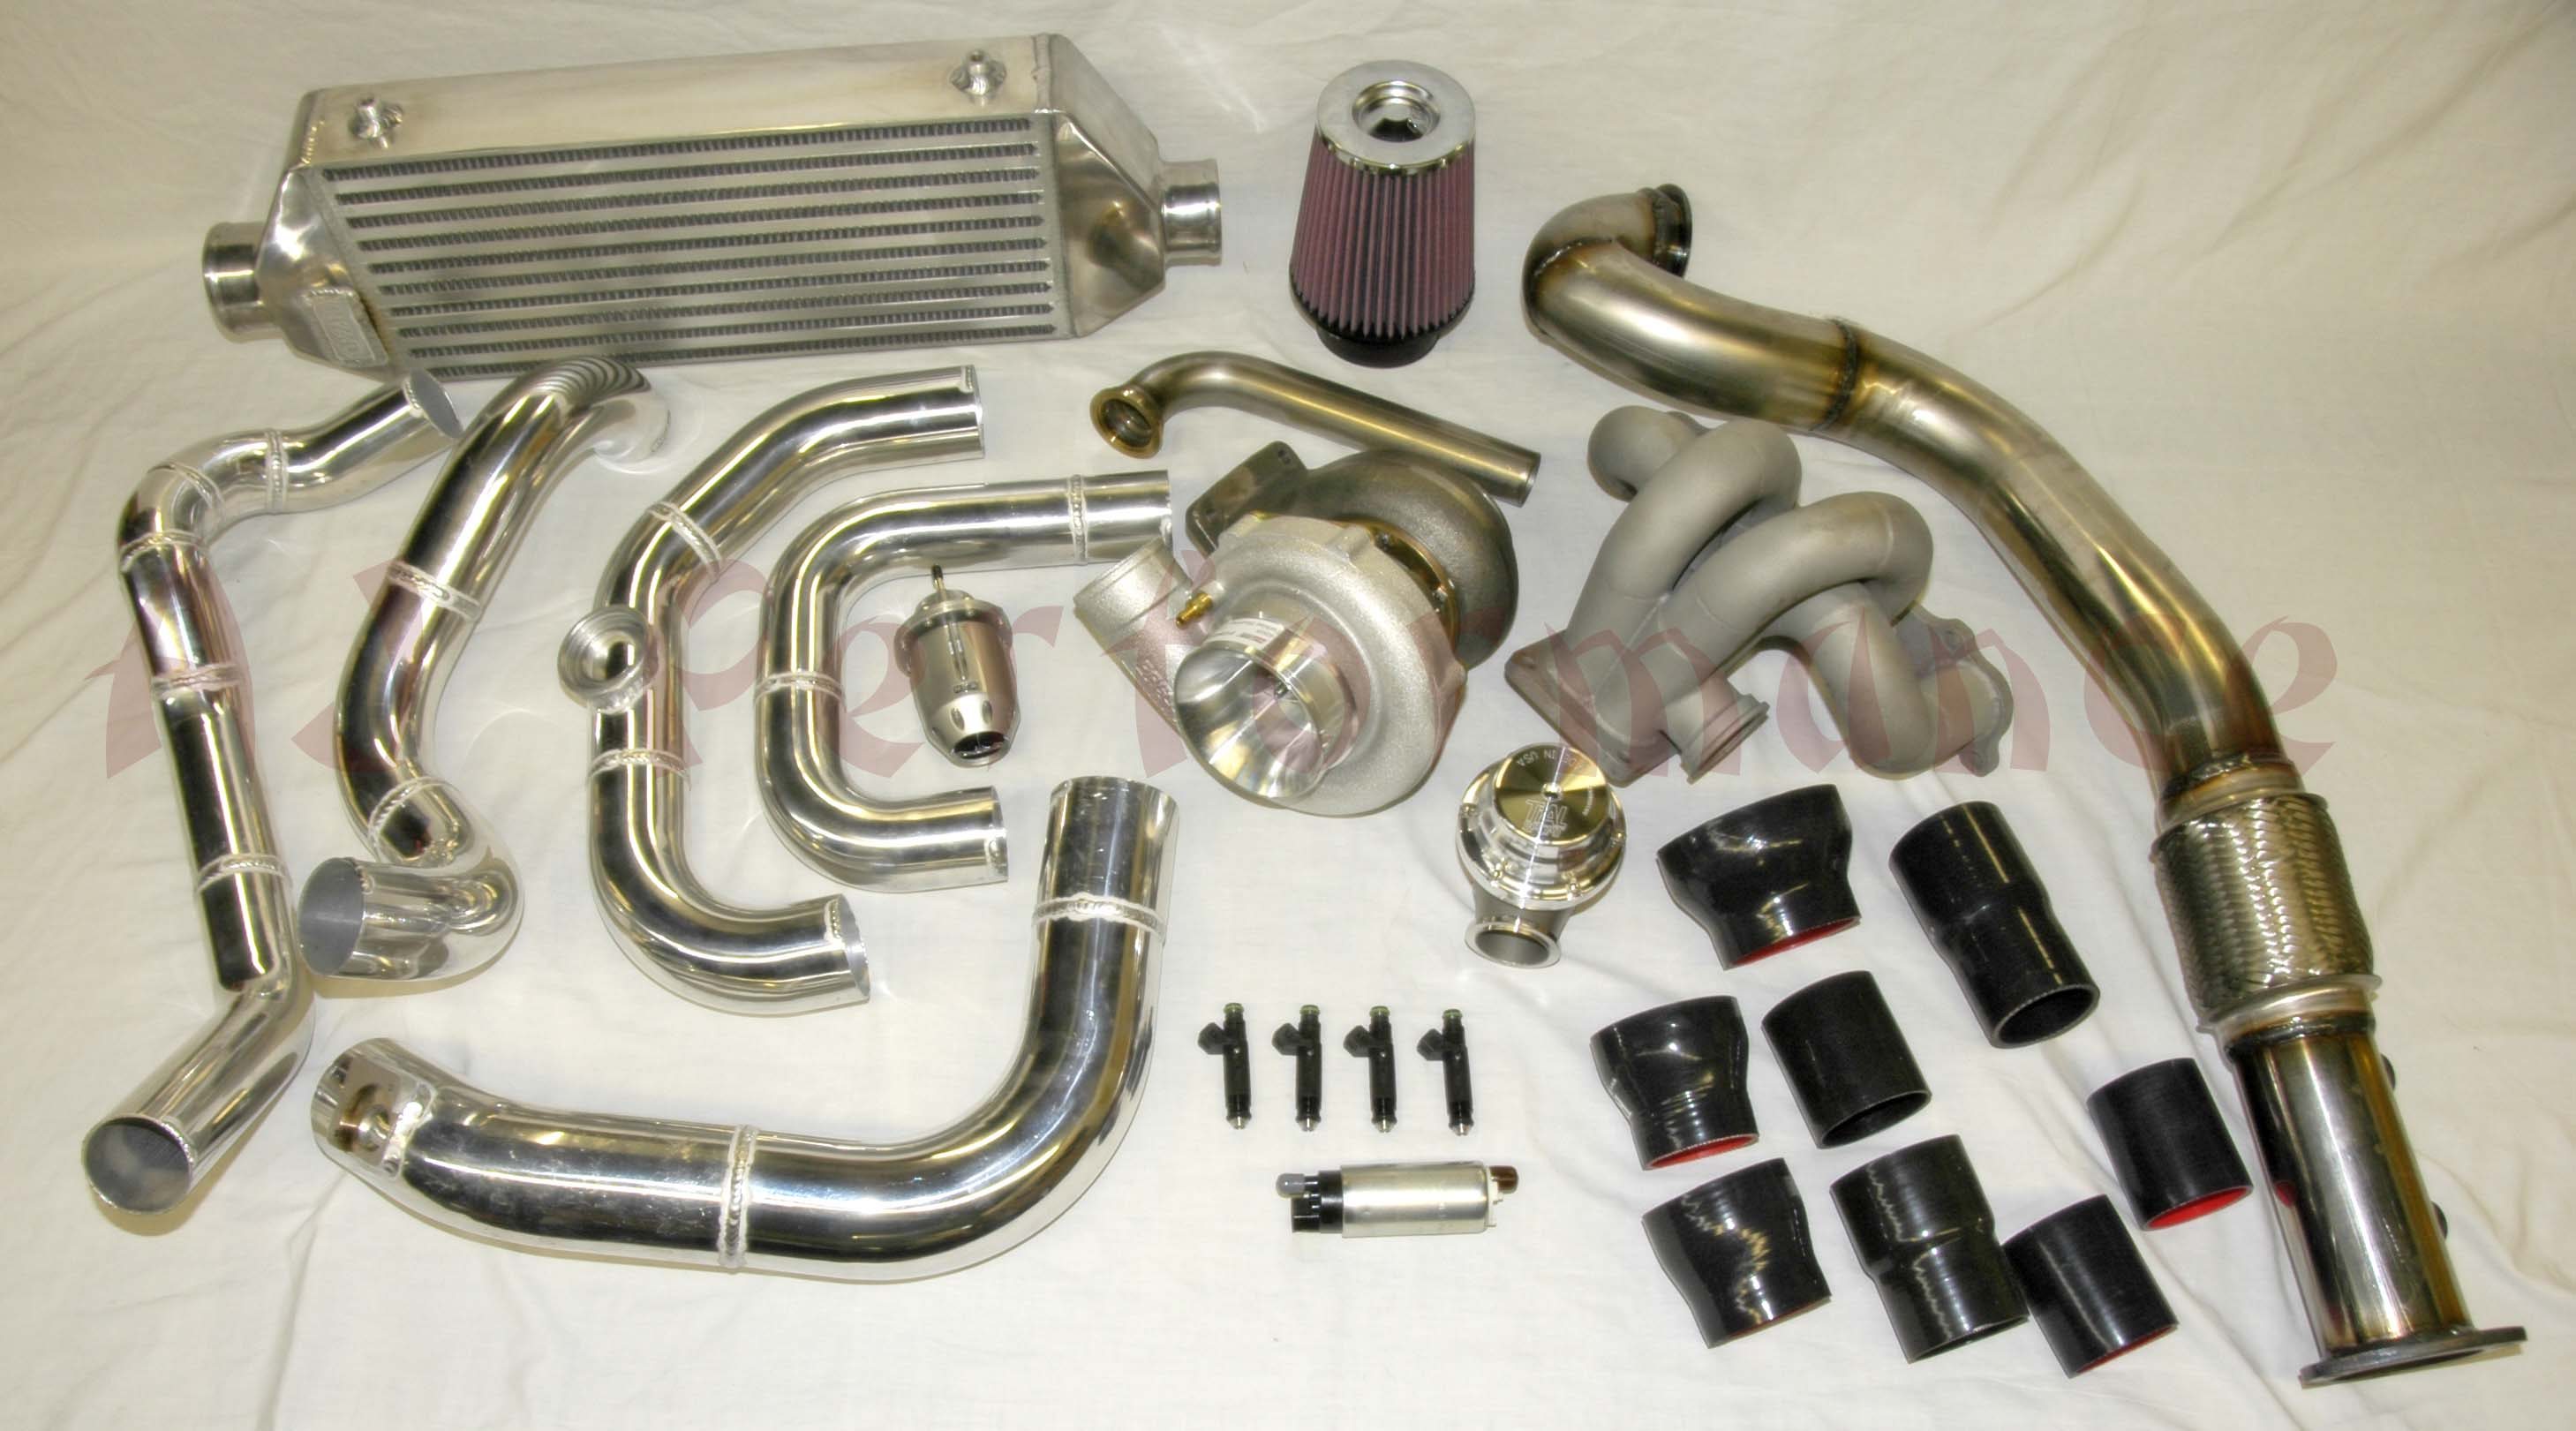 Ajp Turbo Kit For The Honda Civic Si Doubles Your Power 2010 Wiring Harness